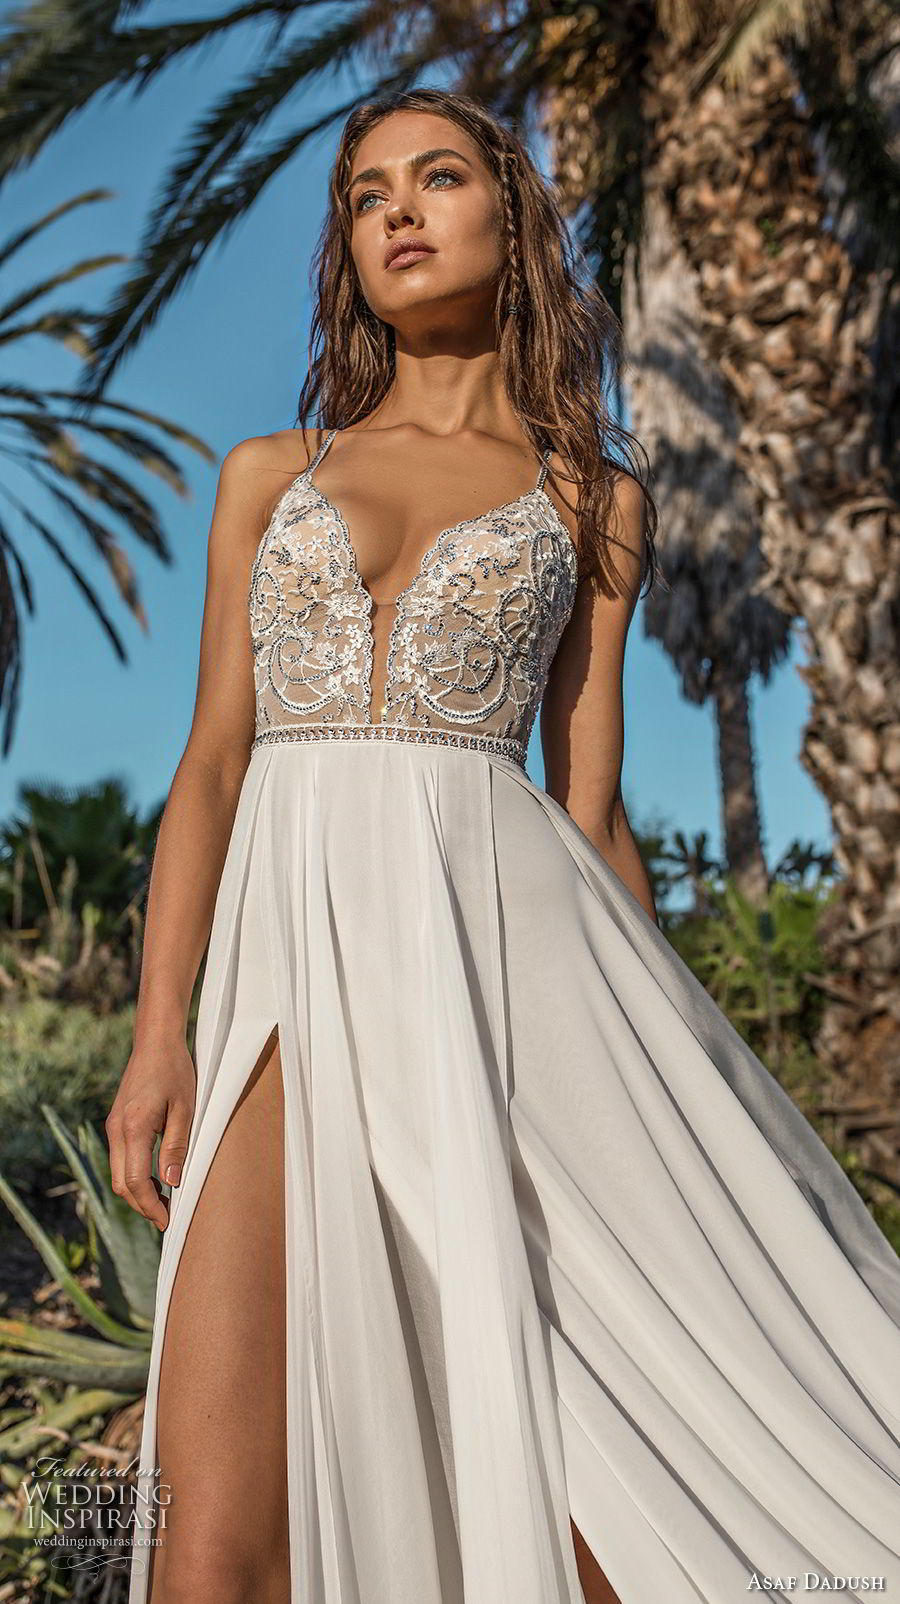 asaf dadush 2018 bridal spaghetti strap deep plunging sweetheart neckline heavily embellised bodice double slit slirt romantic soft a line wedding dress open strap back sweep train (10) zv